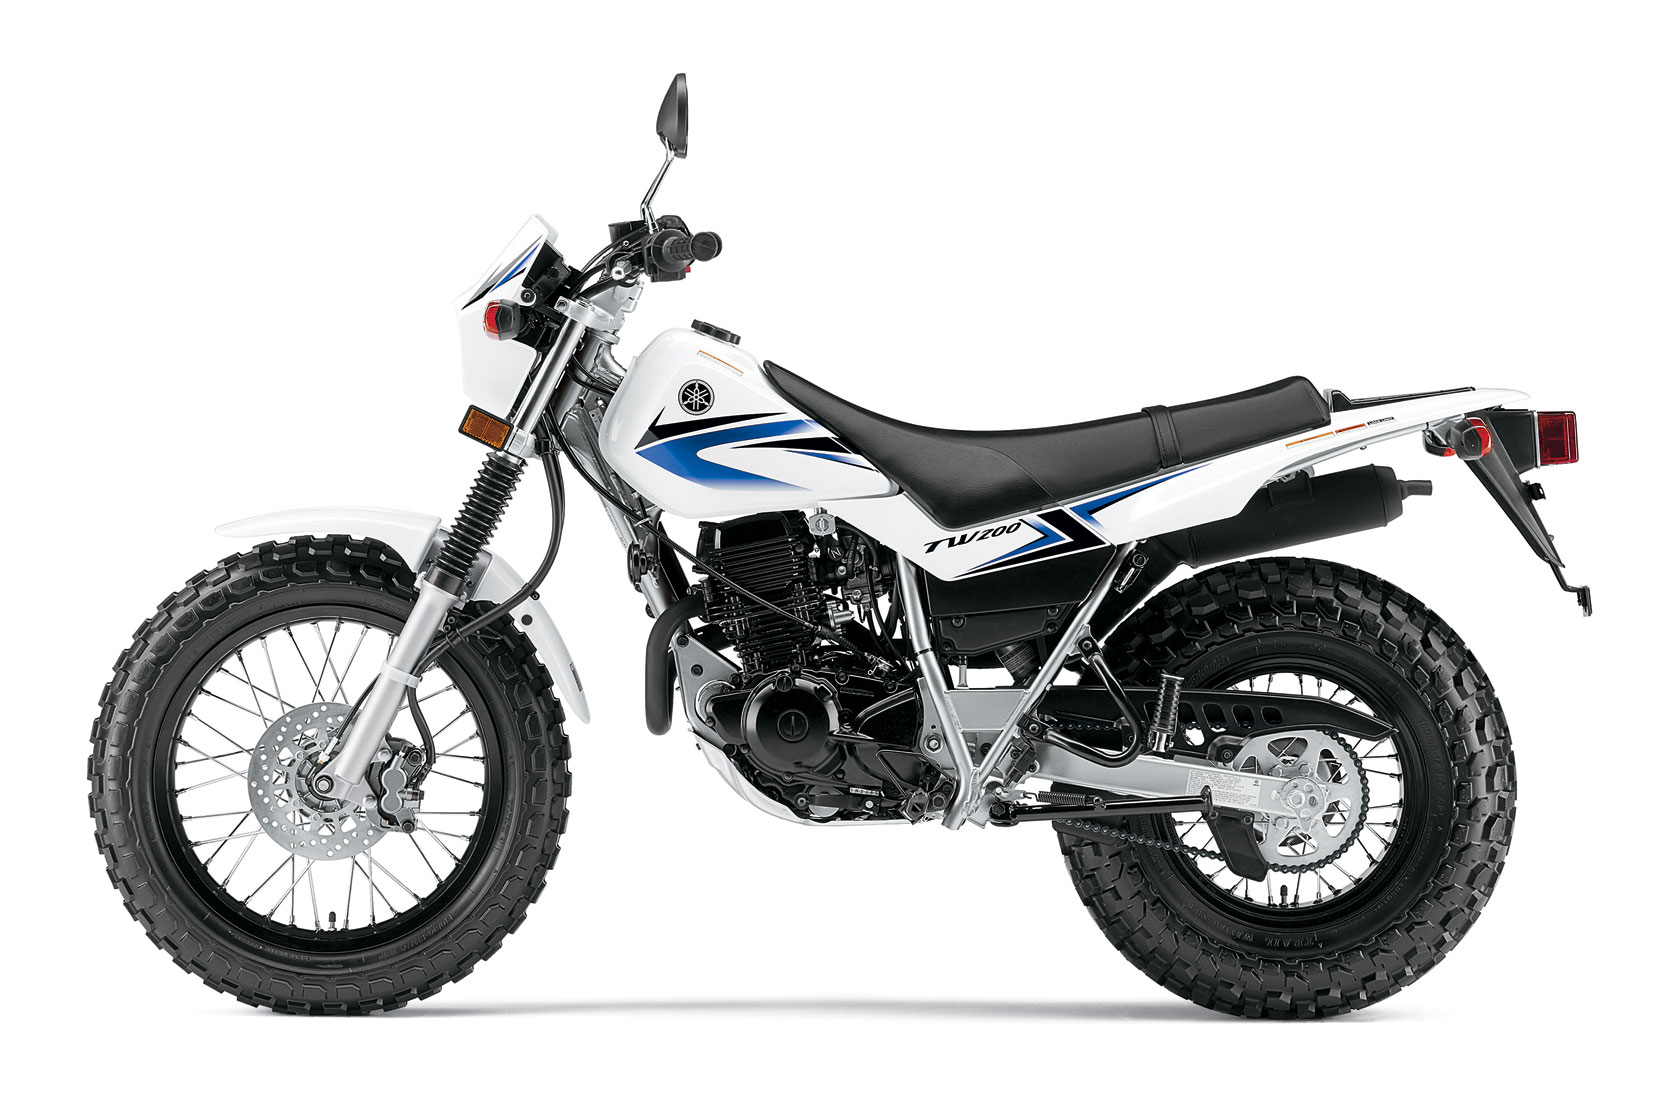 2012 Yamaha TW200 Review